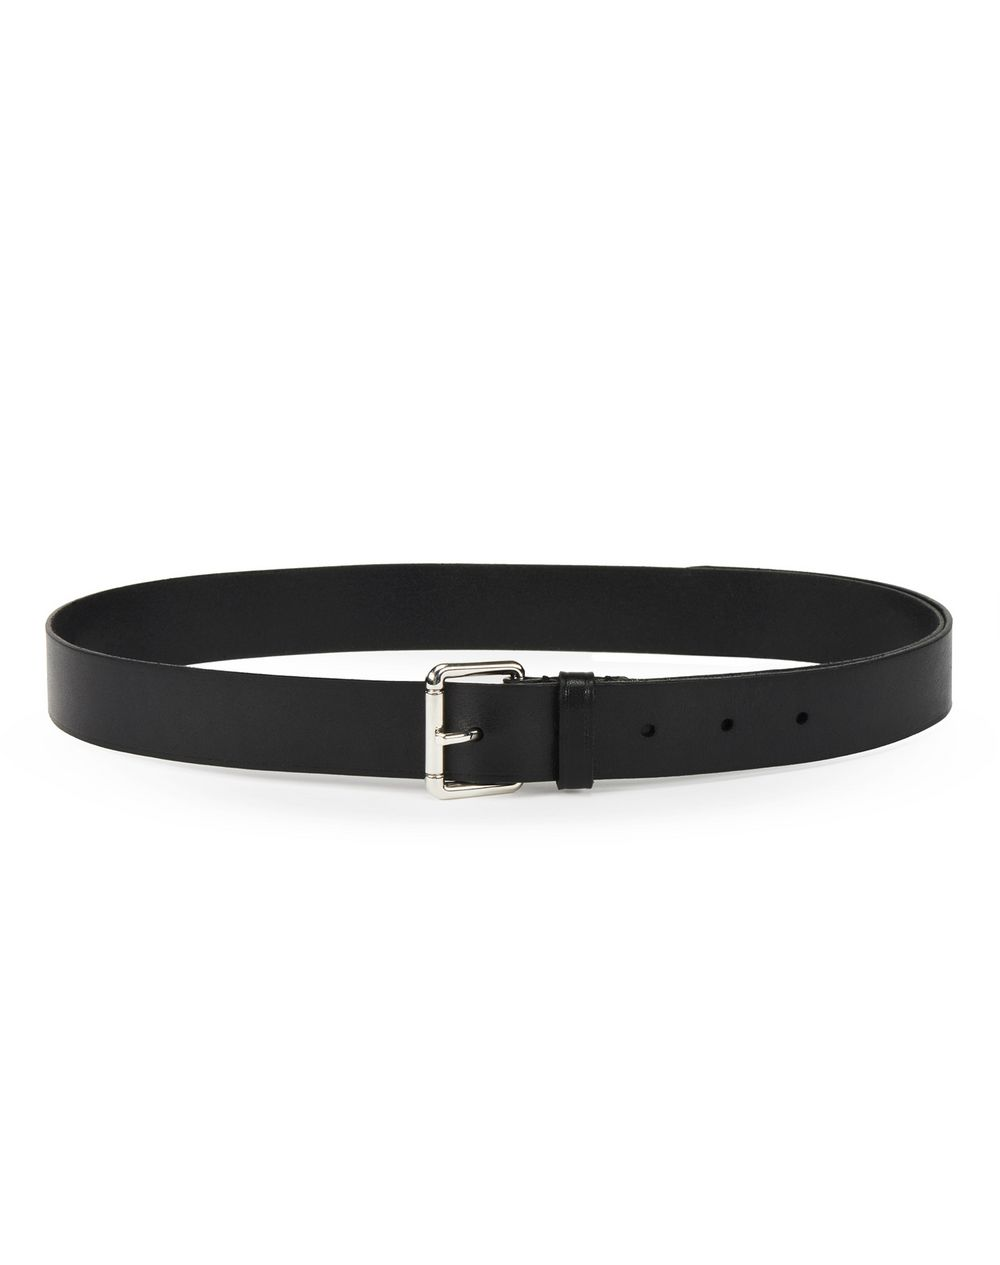 TAILORED BELT - Lanvin